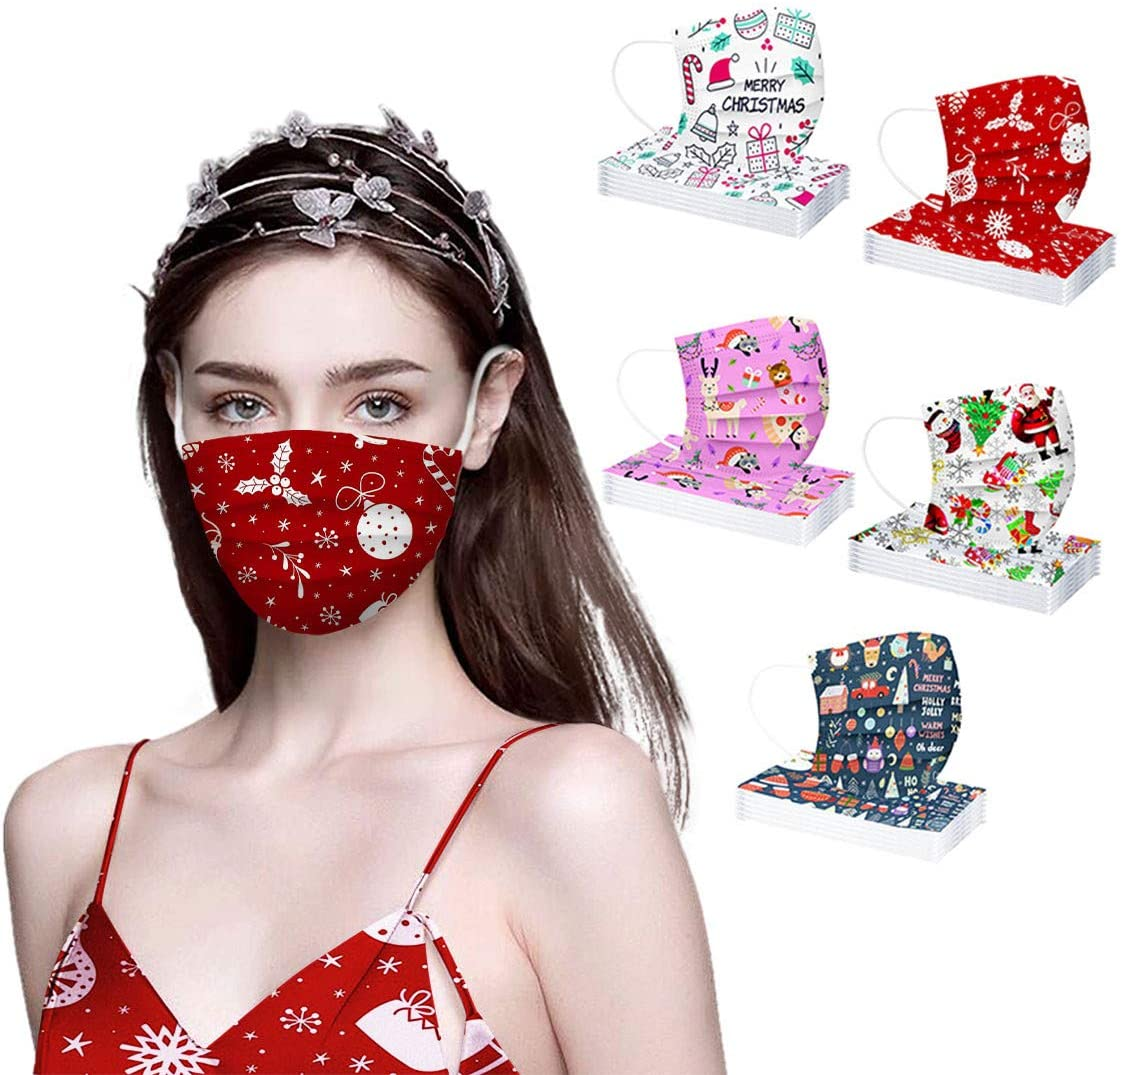 50Pcs Christmas Theme Printed Disposable for Adults, Multiple Pattern Combinations 3-ply for Party (Adults#a, 5x10pcs)